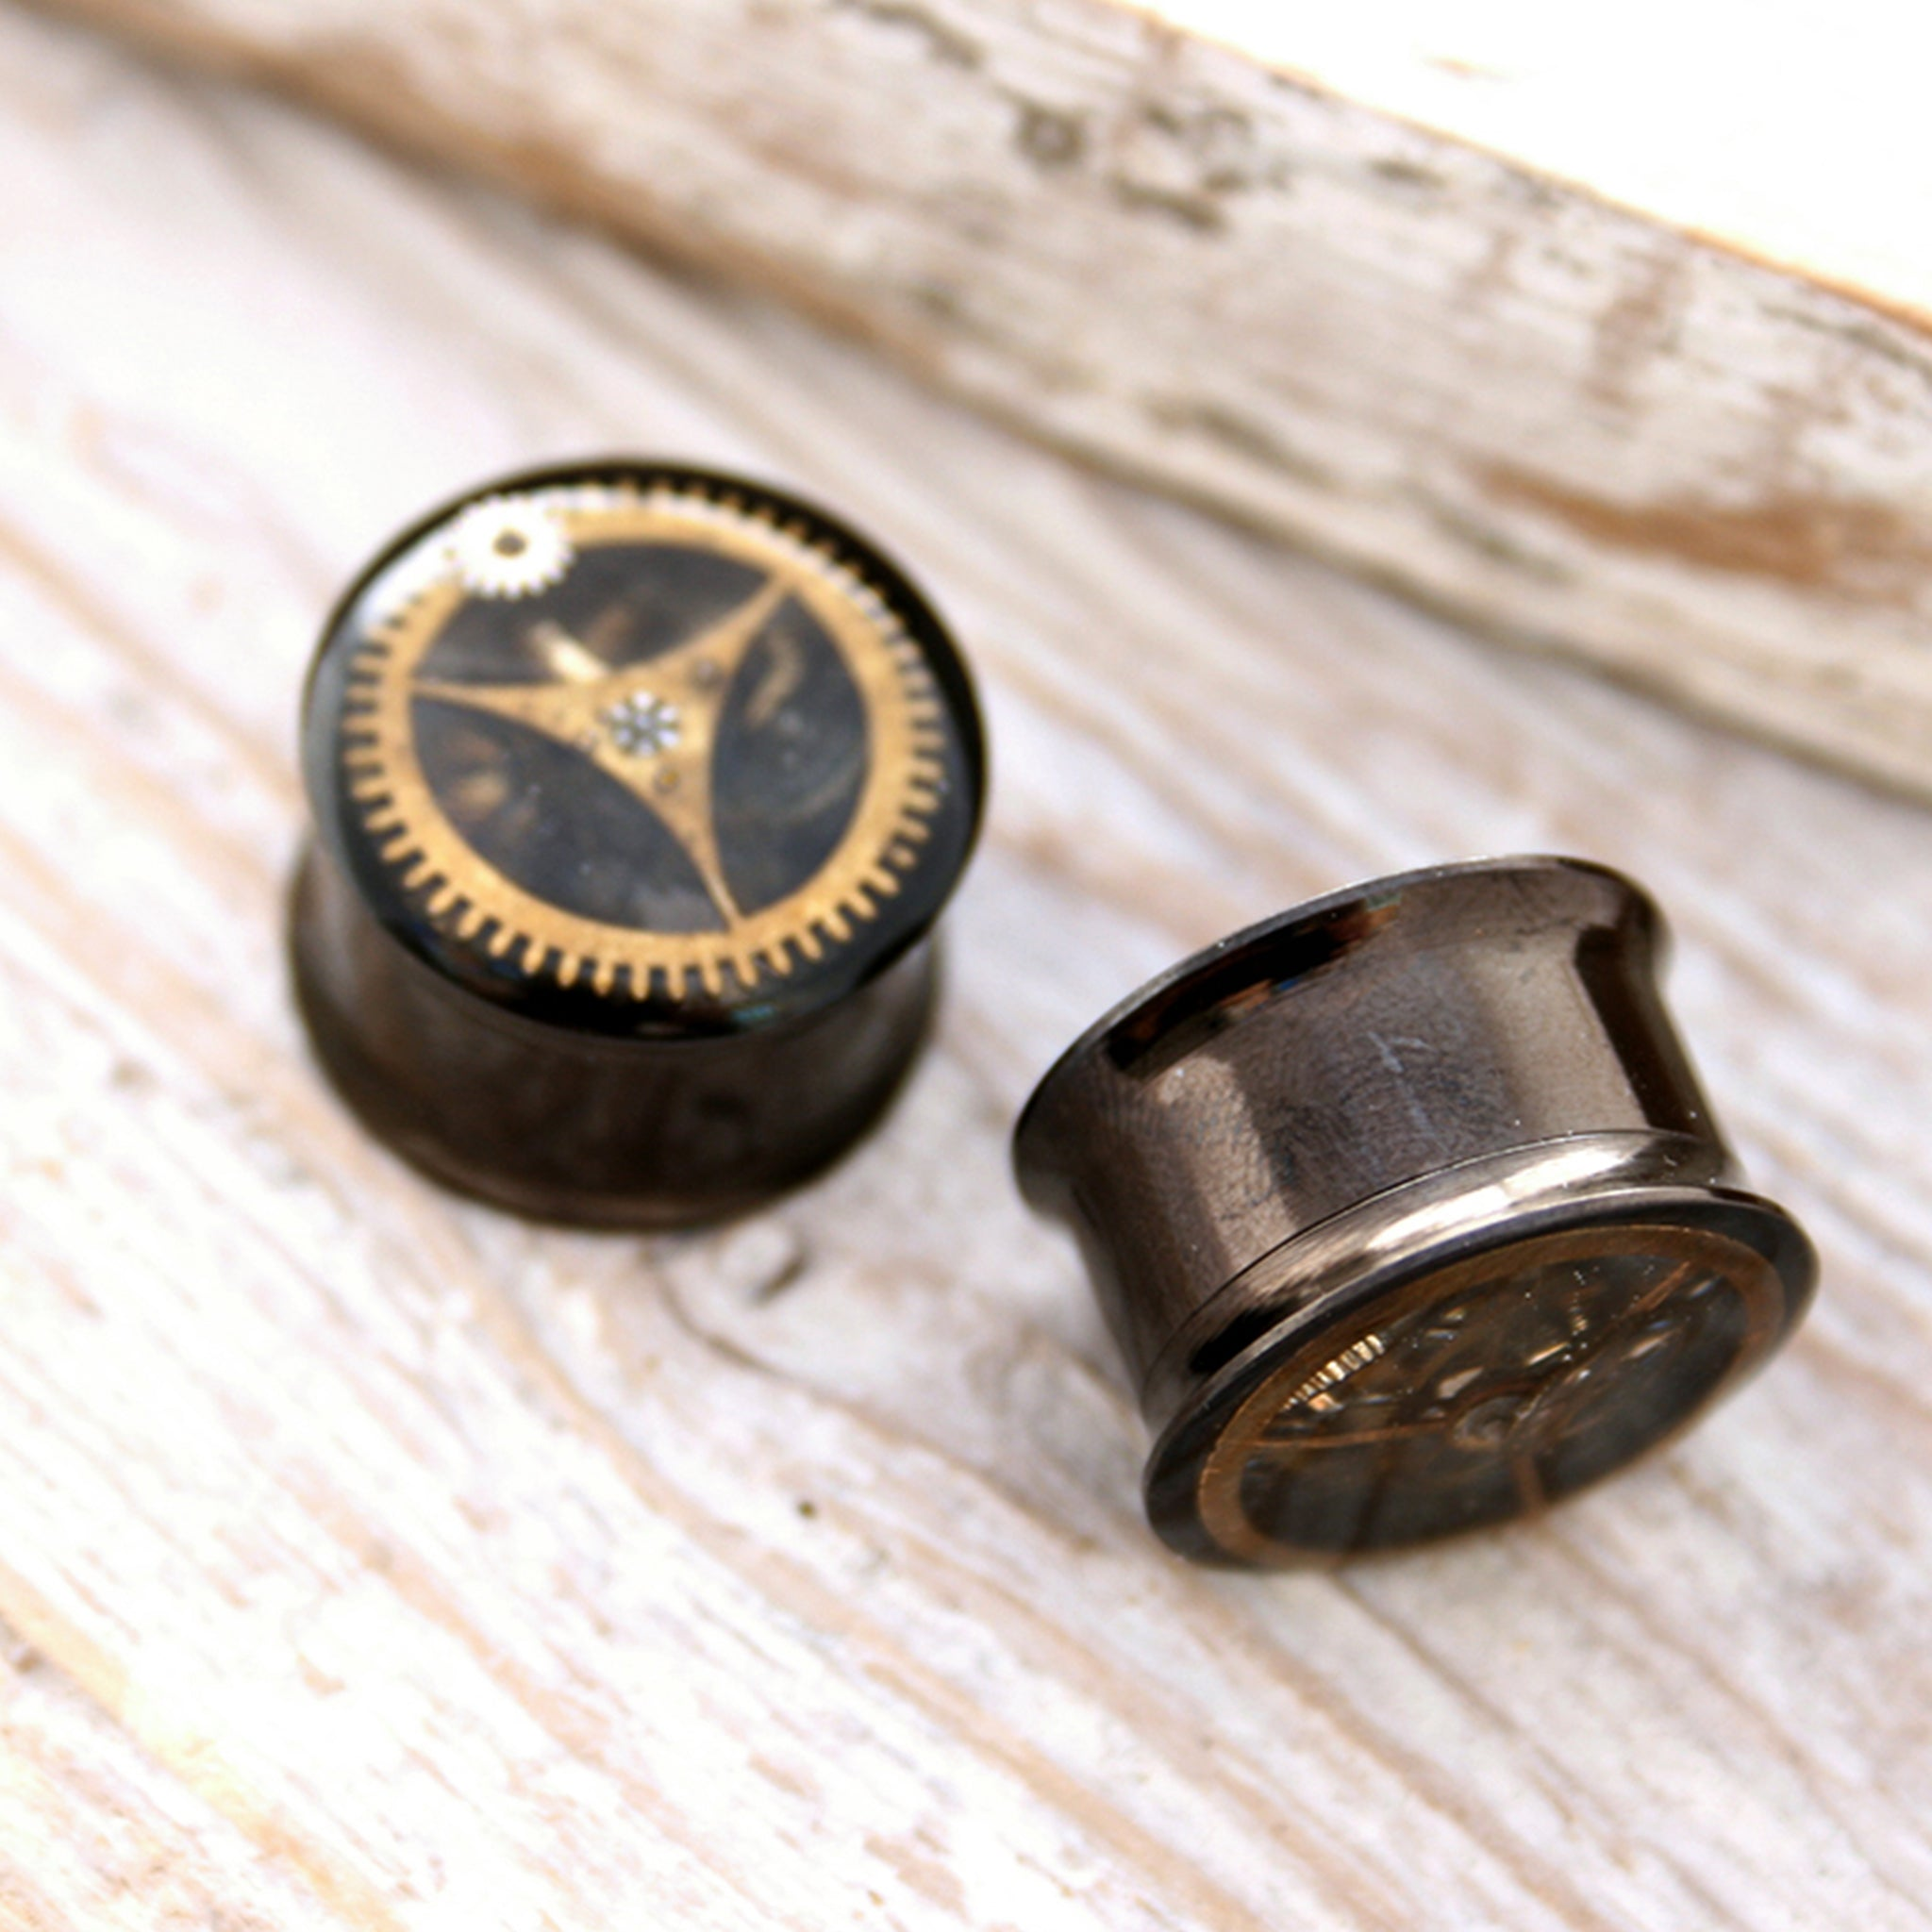 14mm double flare black ear gauges in steampunk style